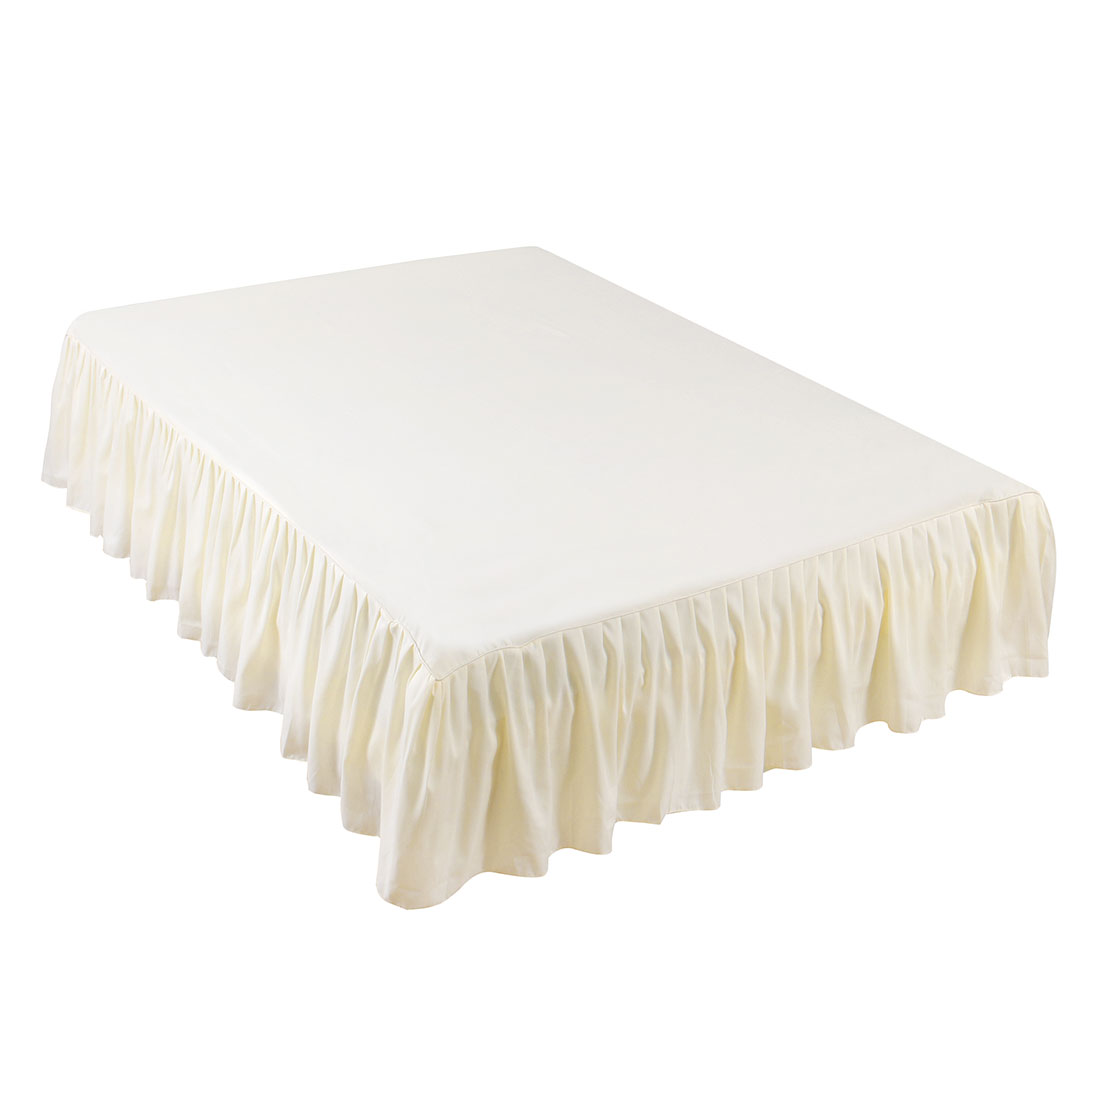 Bedding 14 Inch Drop Pleated Bed Skirt Dust Ruffle By Soft Essentials Home Furniture Diy Fischkom At